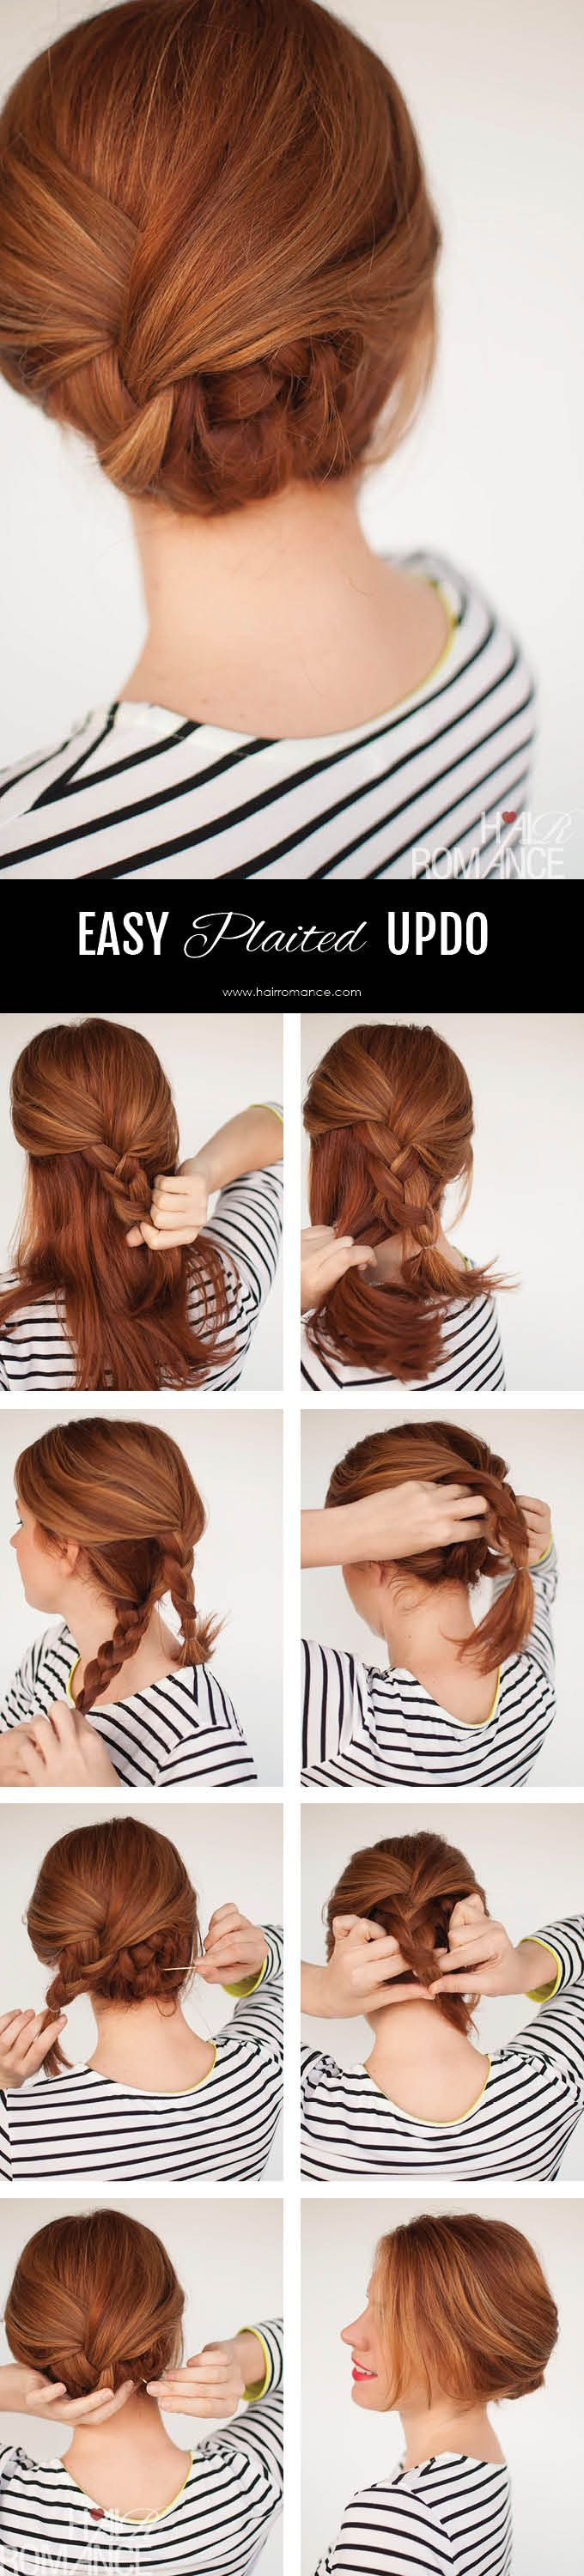 Hair romance easy plaited updo hairstyle tutorial click through